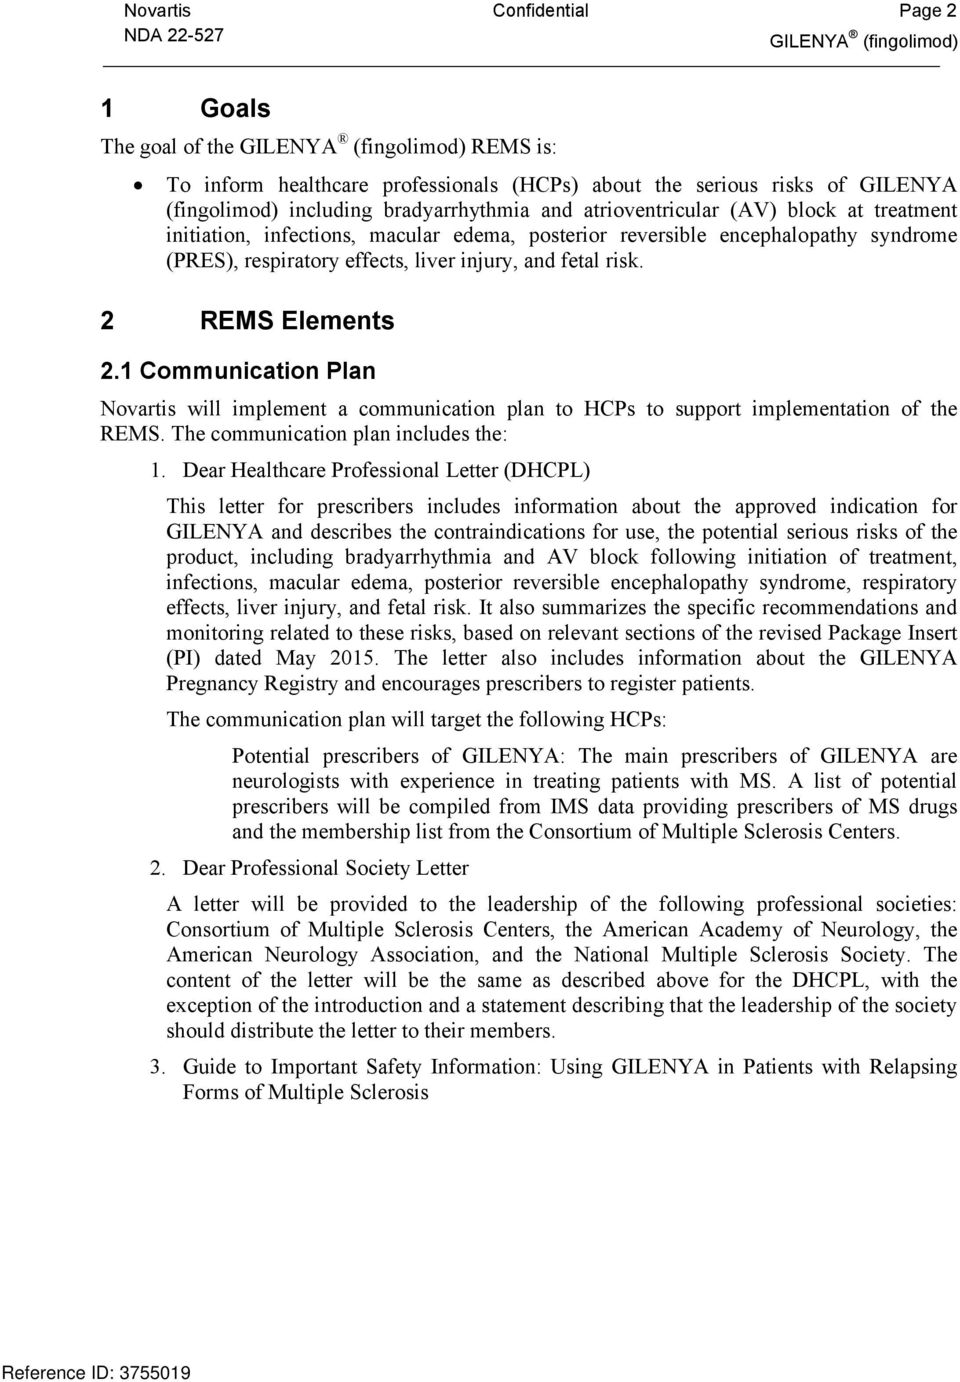 1 Communication Plan Novartis will implement a communication plan to HCPs to support implementation of the REMS. The communication plan includes the: 1.